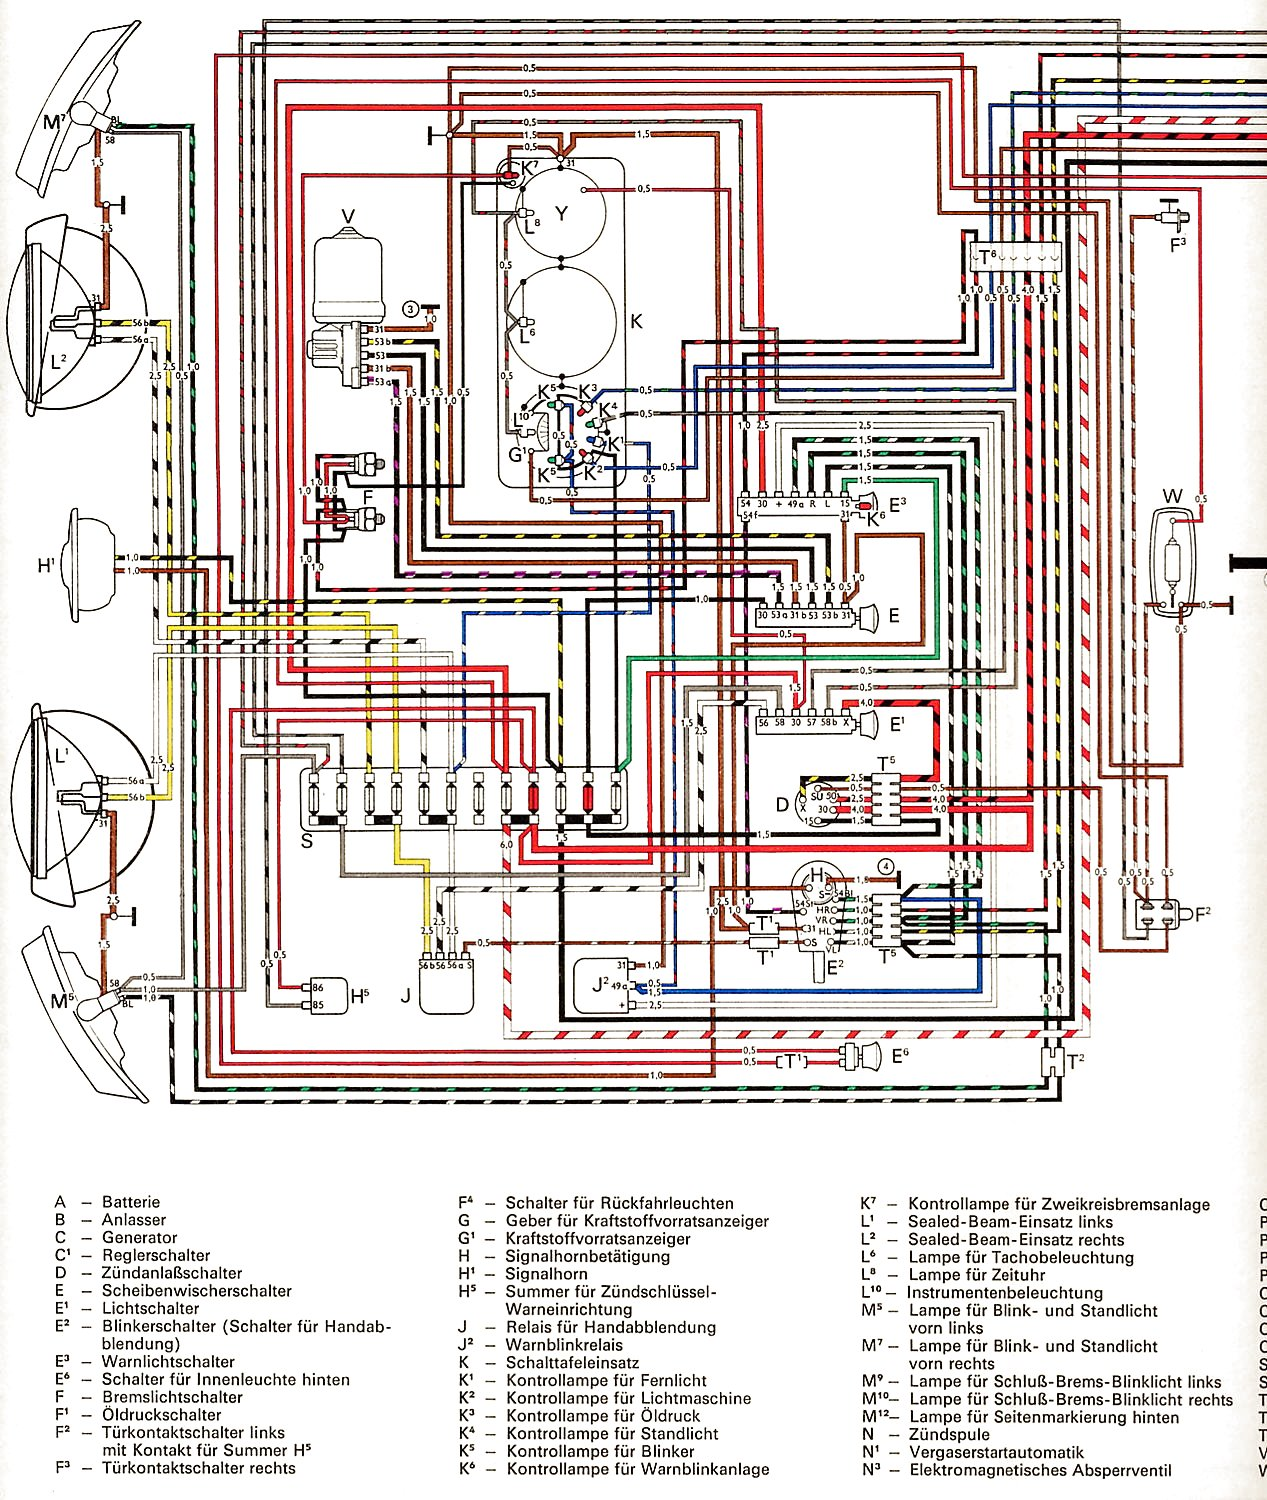 Vw wiring diagram wiring diagrams schematics vintagebus com vw bus and other wiring diagrams vw wiring diagram 5 vw wiring diagram cheapraybanclubmaster Choice Image